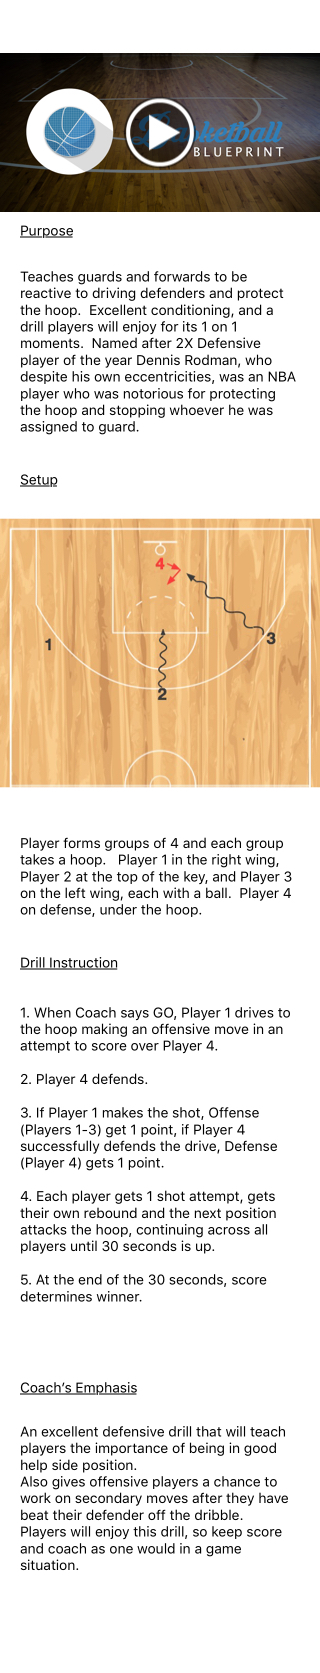 Check out dennis rodman drill from my new app basketball check out dennis rodman drill from my new app basketball blueprint malvernweather Choice Image